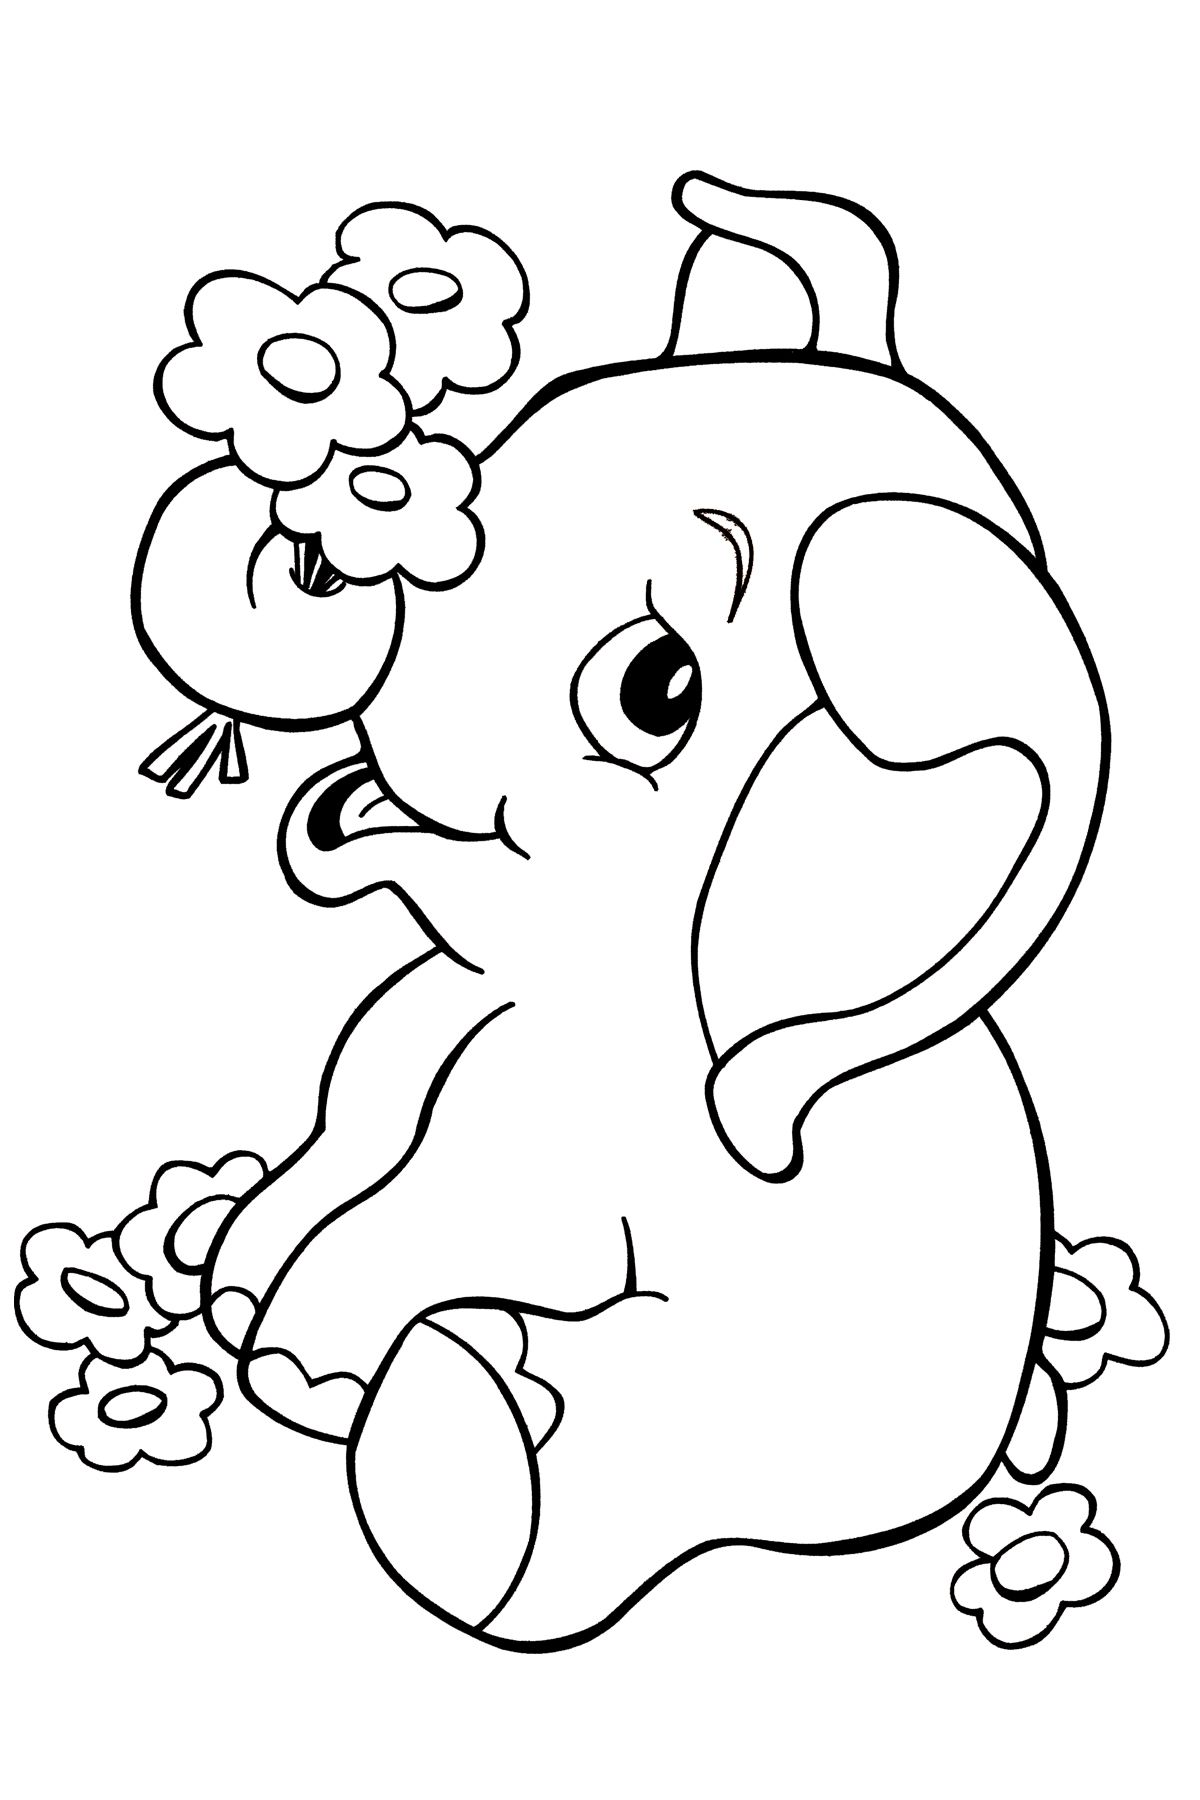 photograph about Elephant Coloring Pages Printable named elephant line artwork - Google Appear sewing commitment